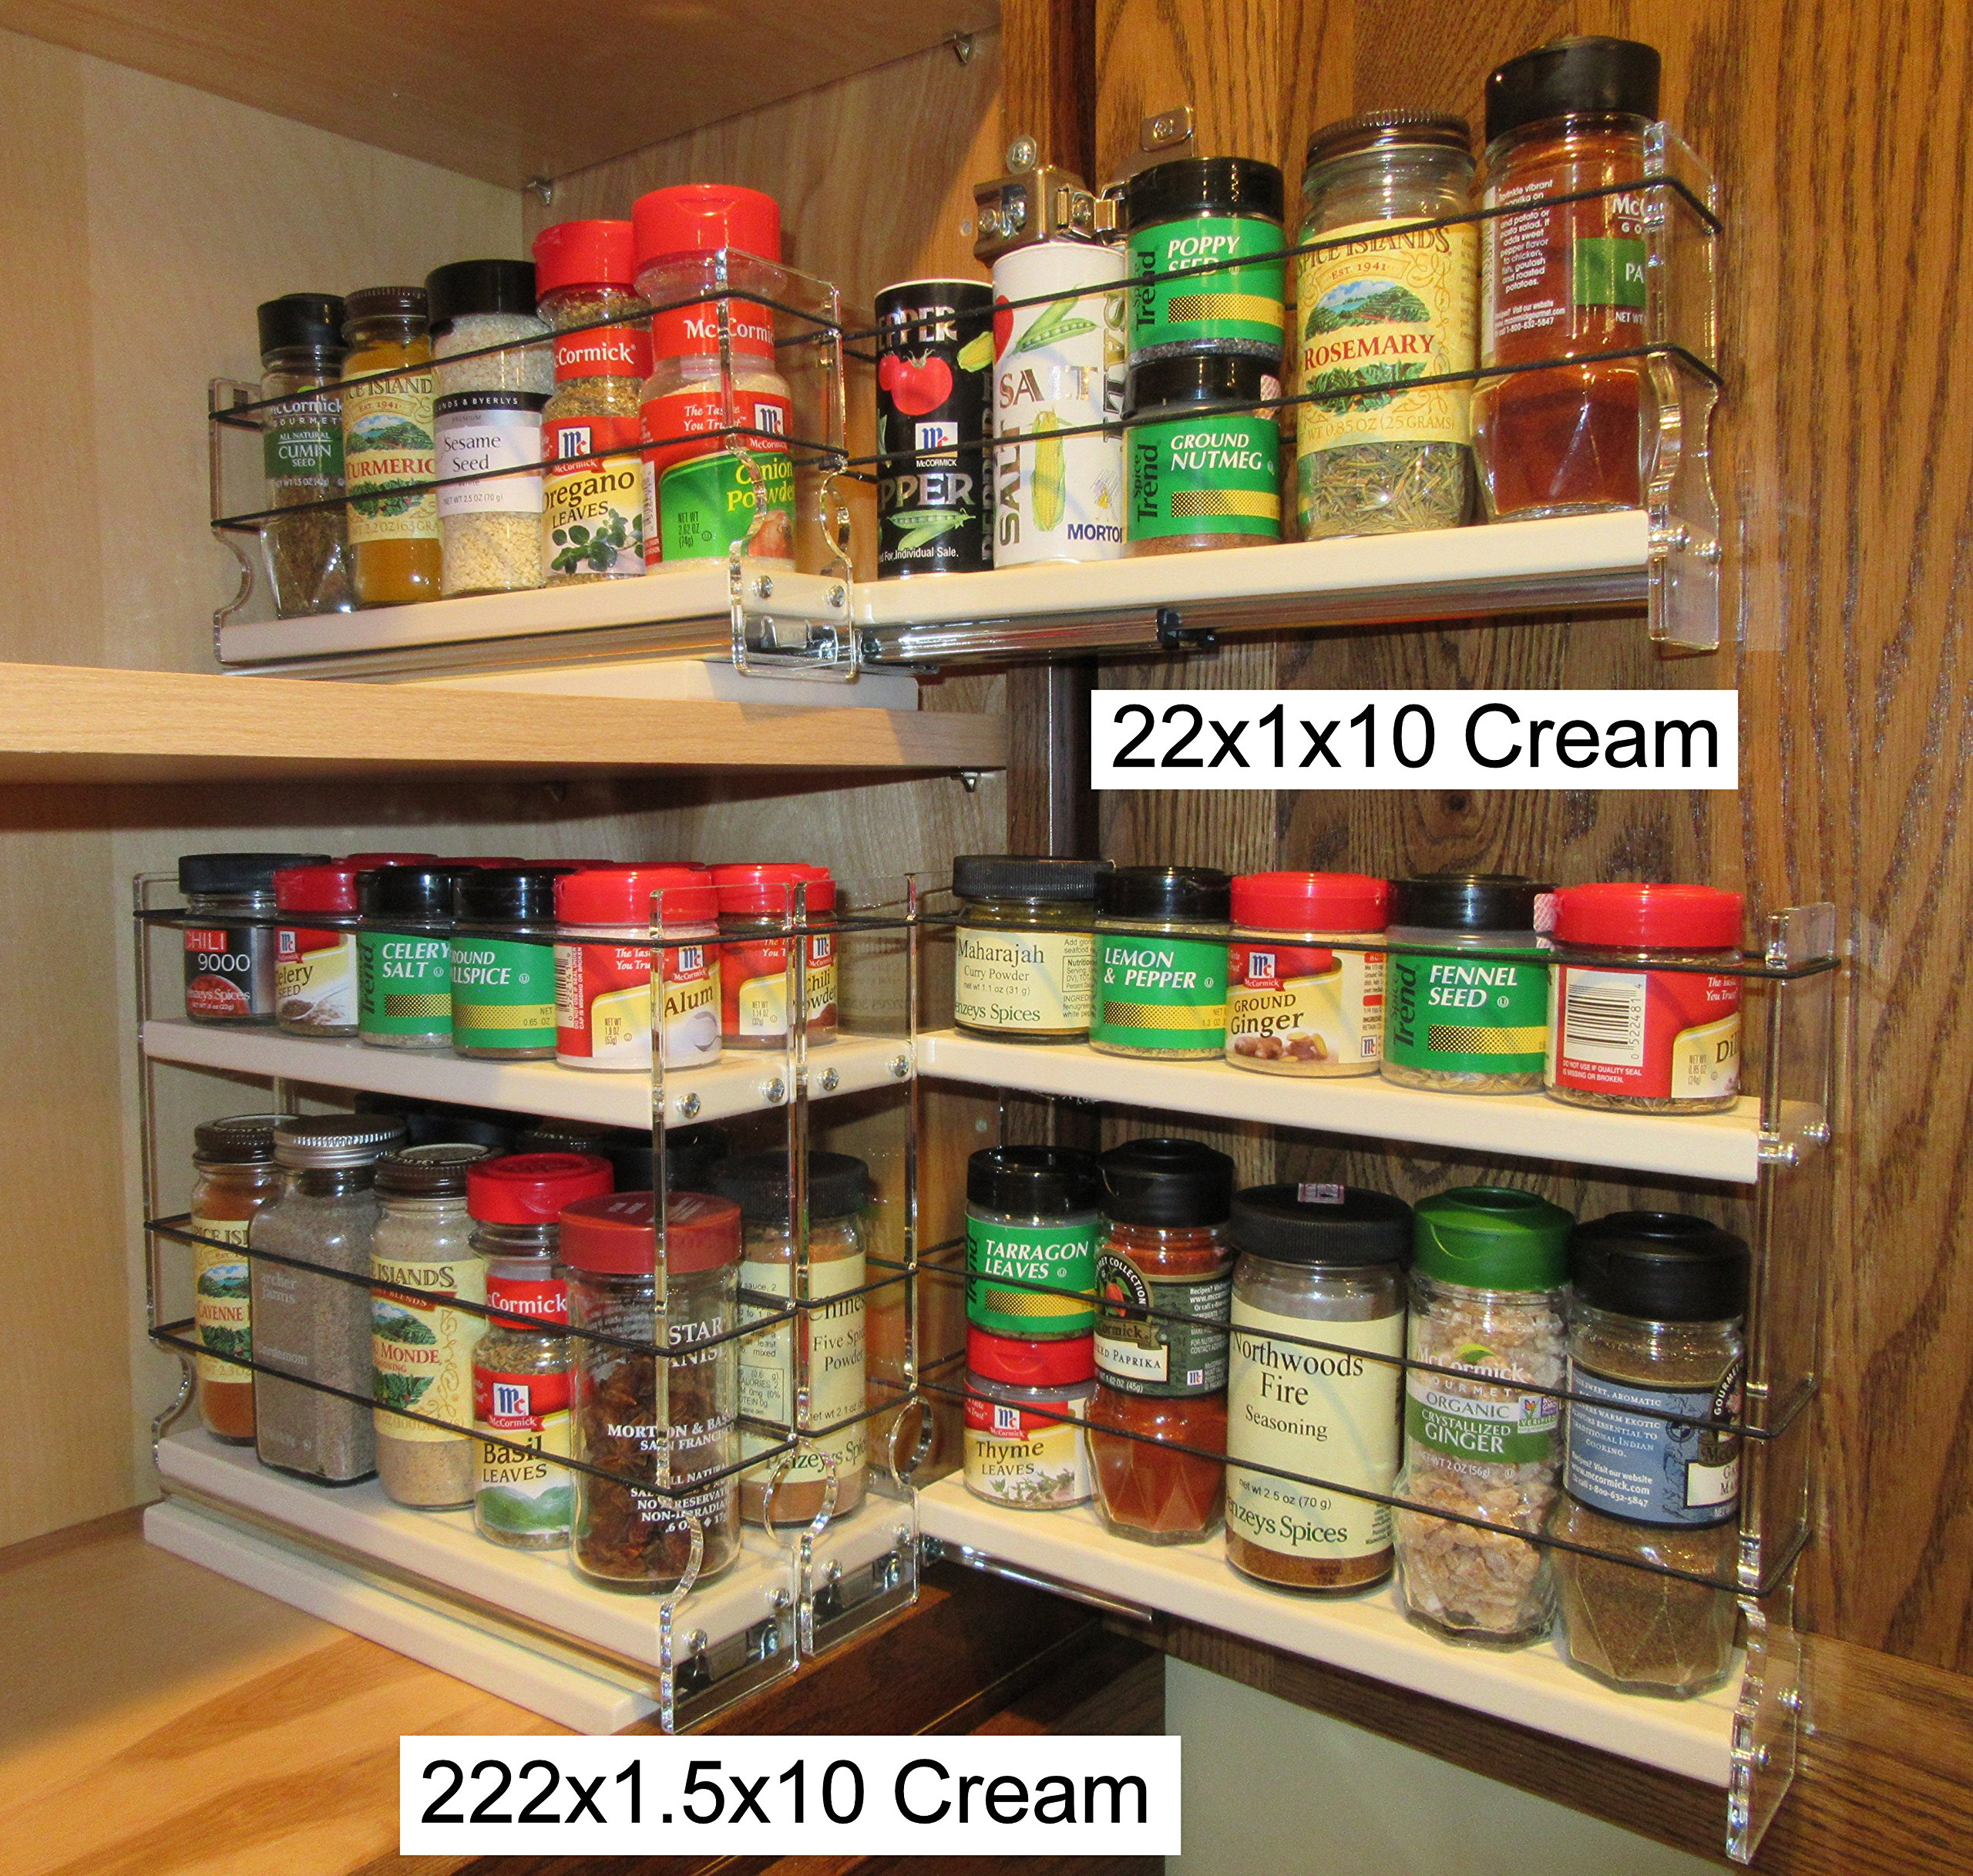 Vertical Spice - 222x1.5x11 DC - Spice Rack - 3 Drawers - 15 Regular/15 Half-size Capacity - Cabinet Mounted by Vertical Spice